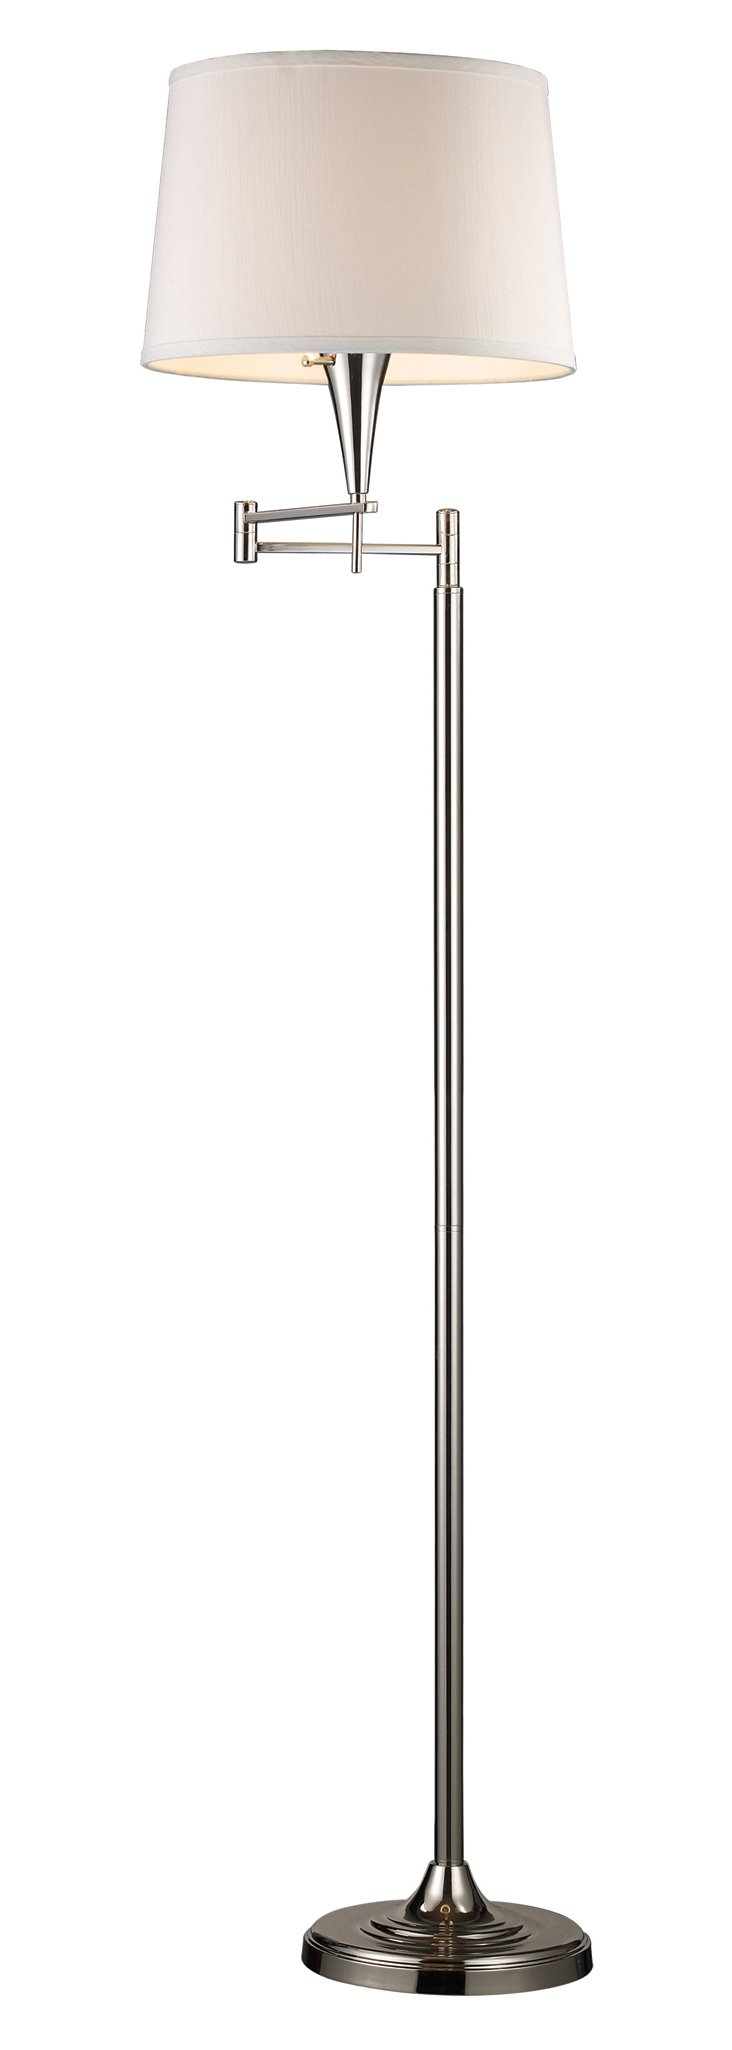 Nevis Floor Lamp, Polished Chrome